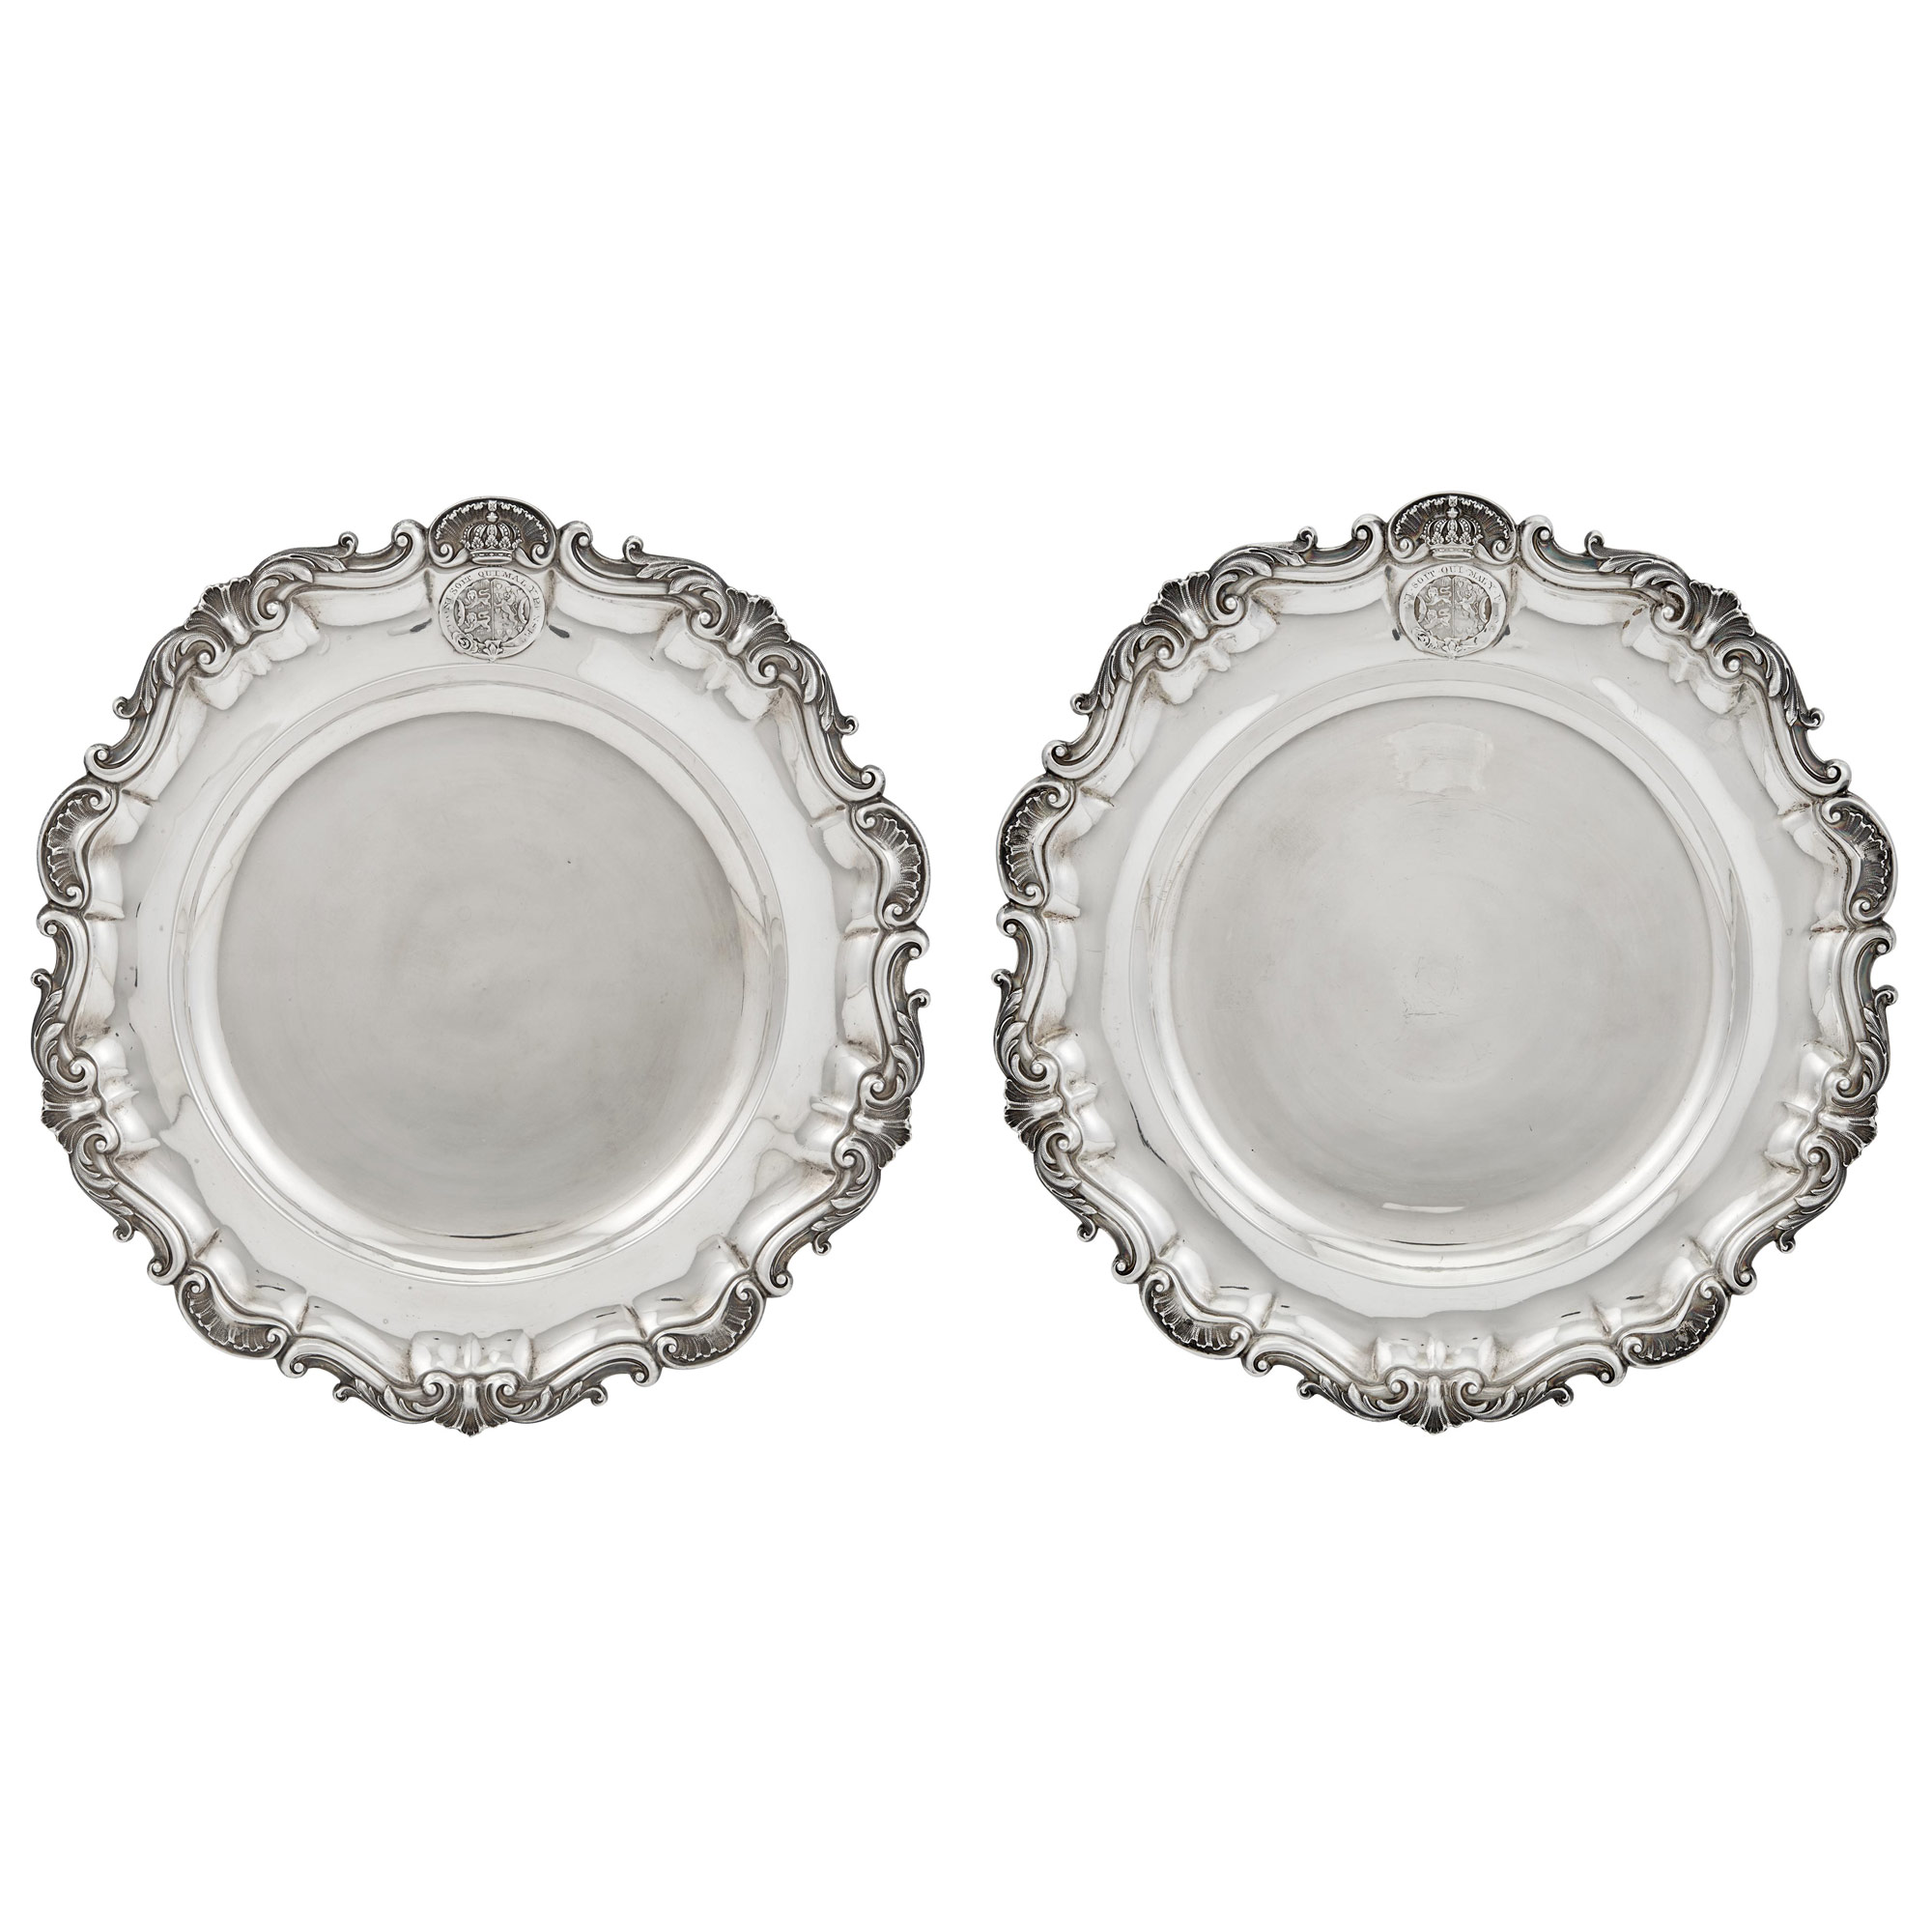 Lot image - Pair of Victorian Sterling Silver Dinner Plates from the Duke of Brunswick Service